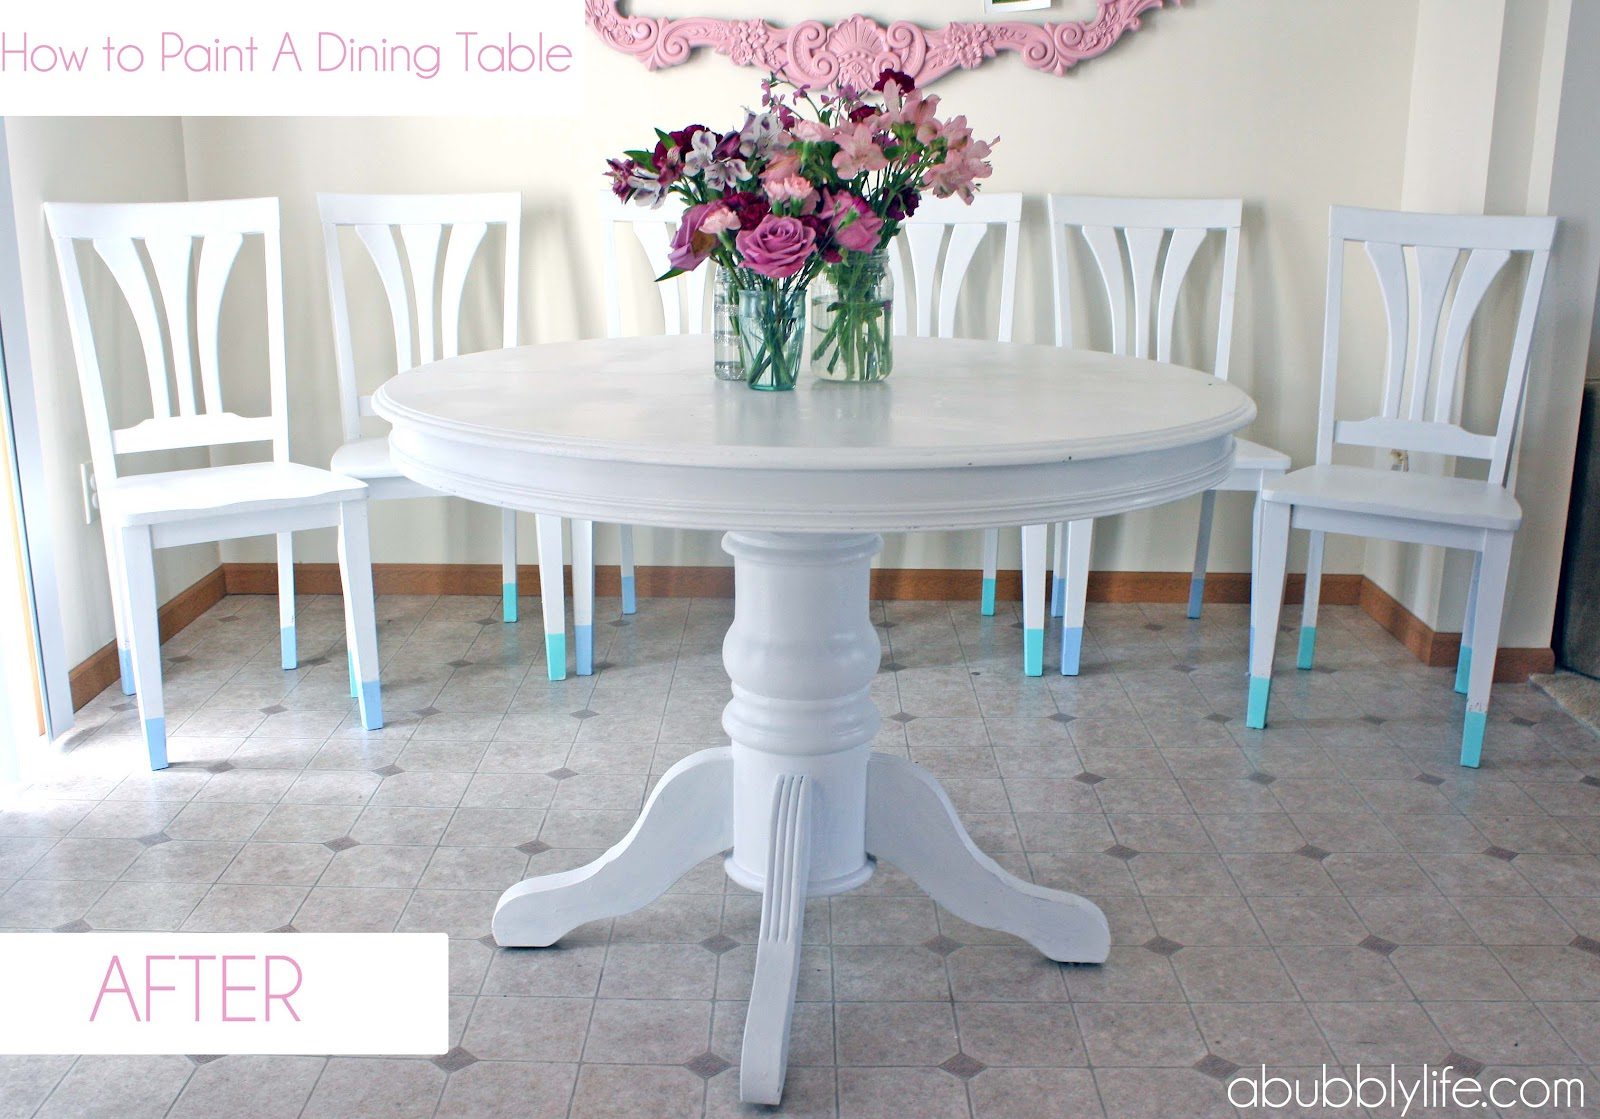 how to paint dining table chairs refinish kitchen table How to Paint a Dining Room Table Chairs Makeover Reveal